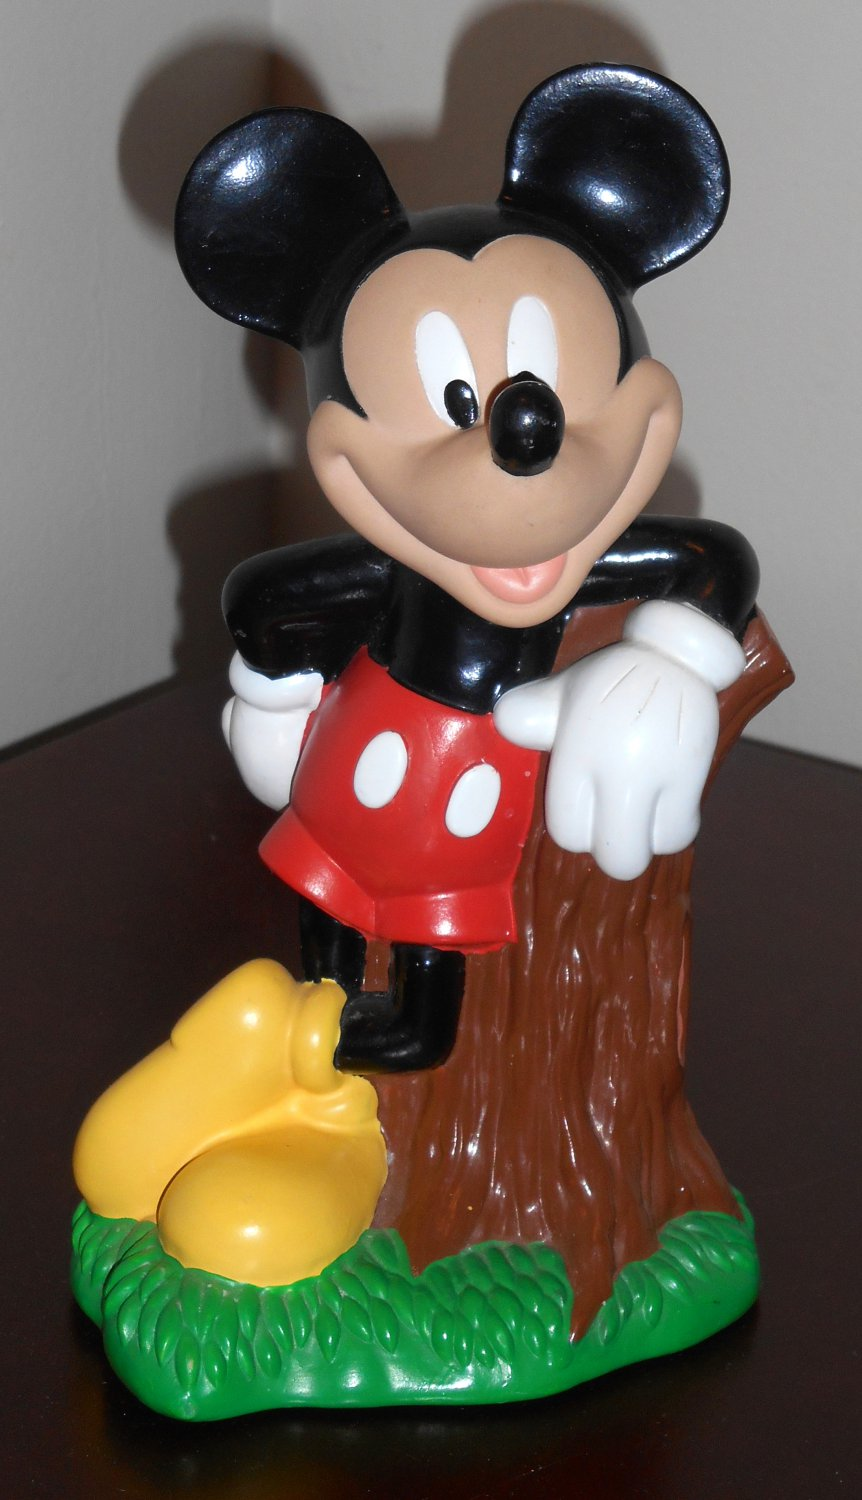 Disney Mickey Mouse 8 Inch Plastic Novelty Piggy Bank Money Coin Tree Stump Just Toys 1994